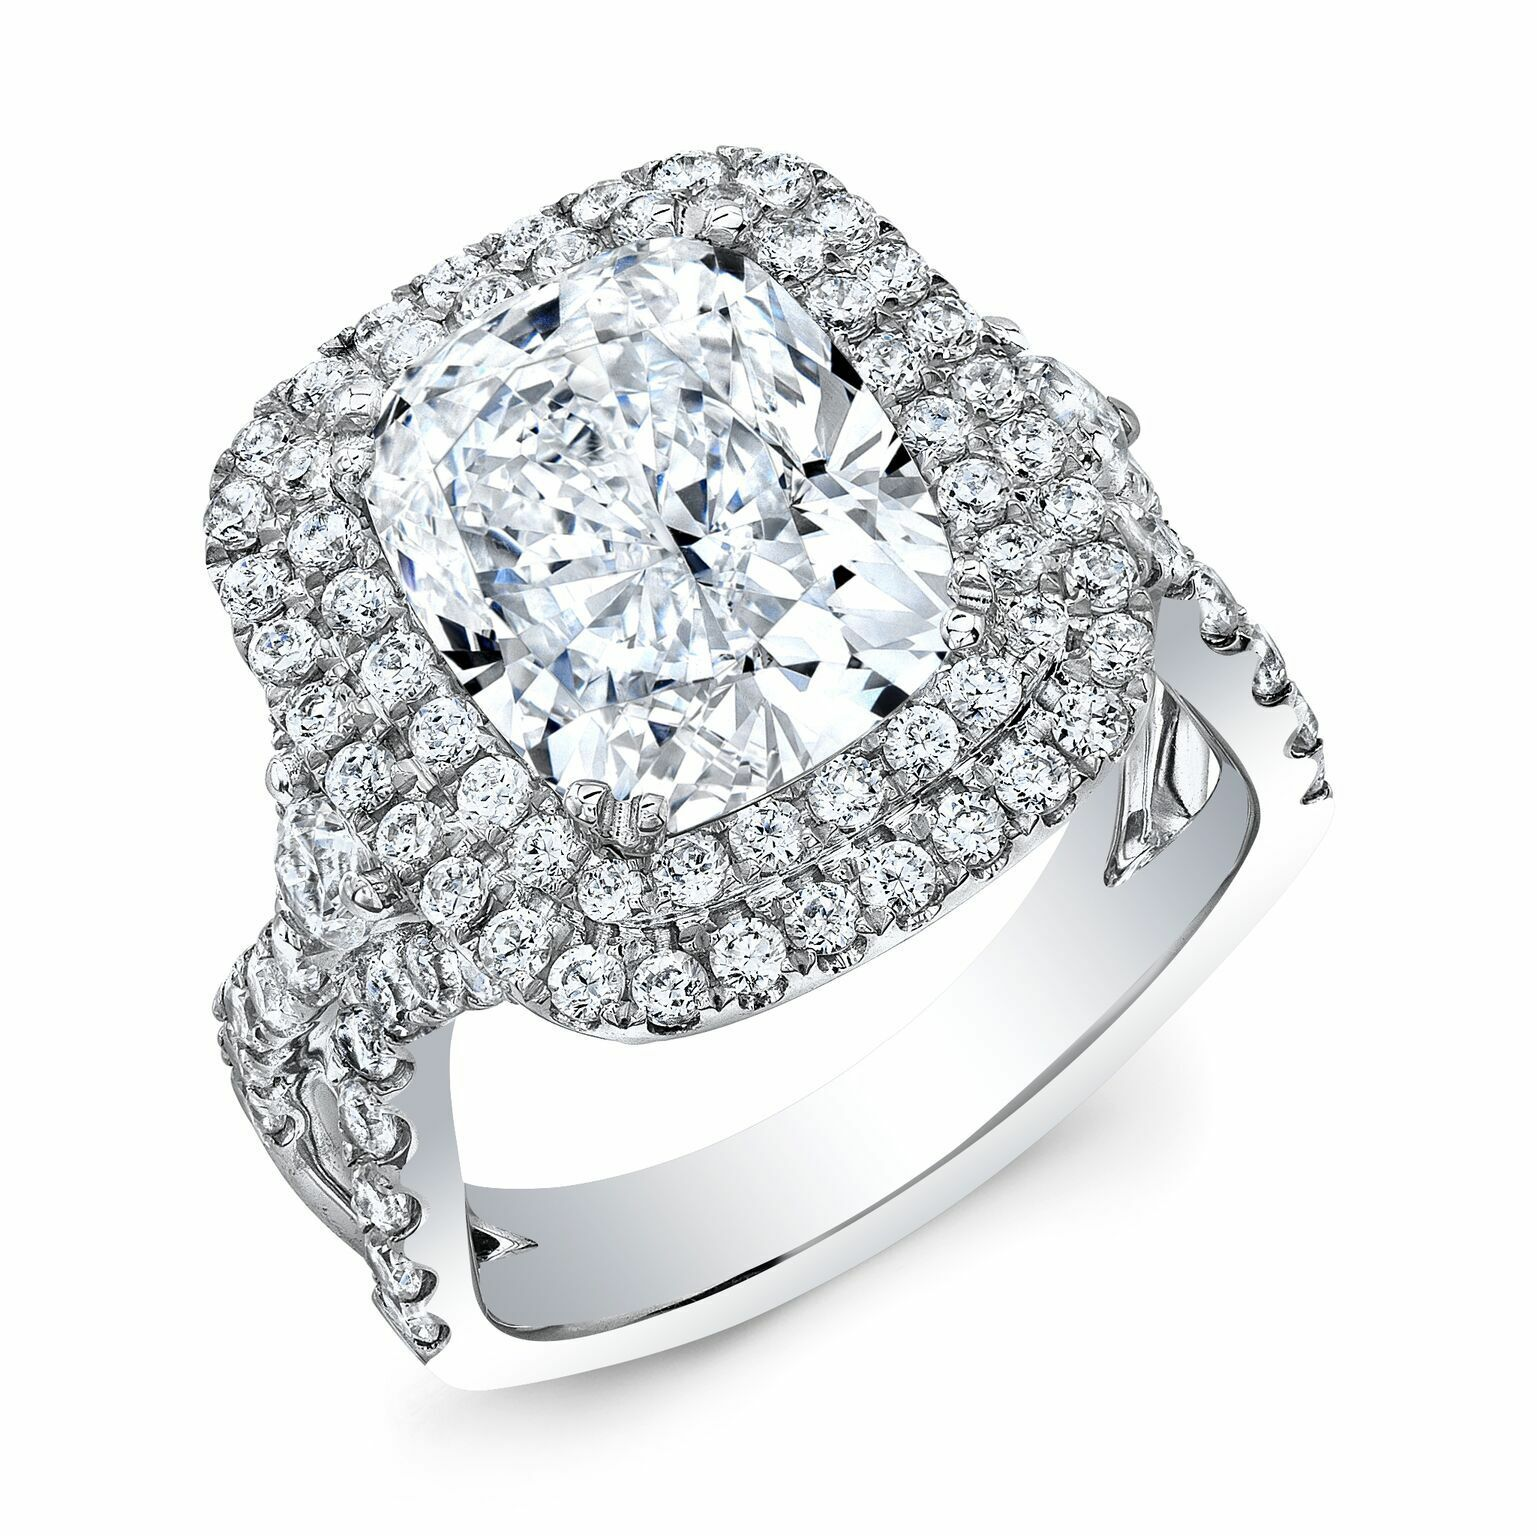 2.40ctNatural Cushion Cut Double Halo Split Shank with side diamonds profile GIA